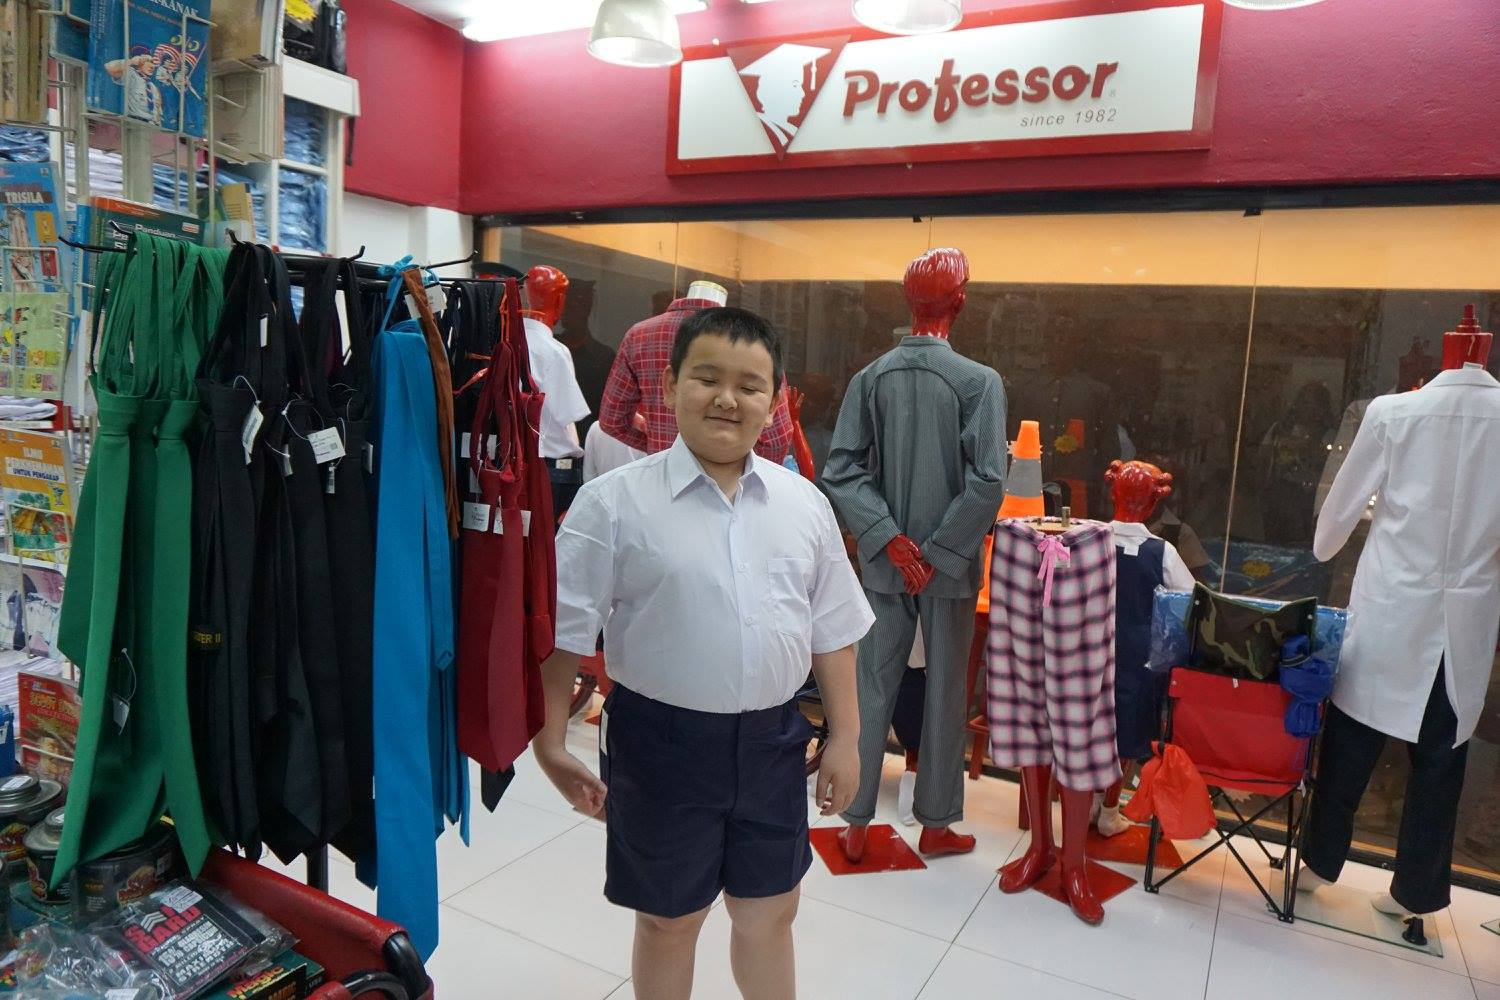 A frequent business type near School Uniform Factory is Radio Broadcasting Stations.. There is a Shoe Store not far away for all your footwear needs. Need a .